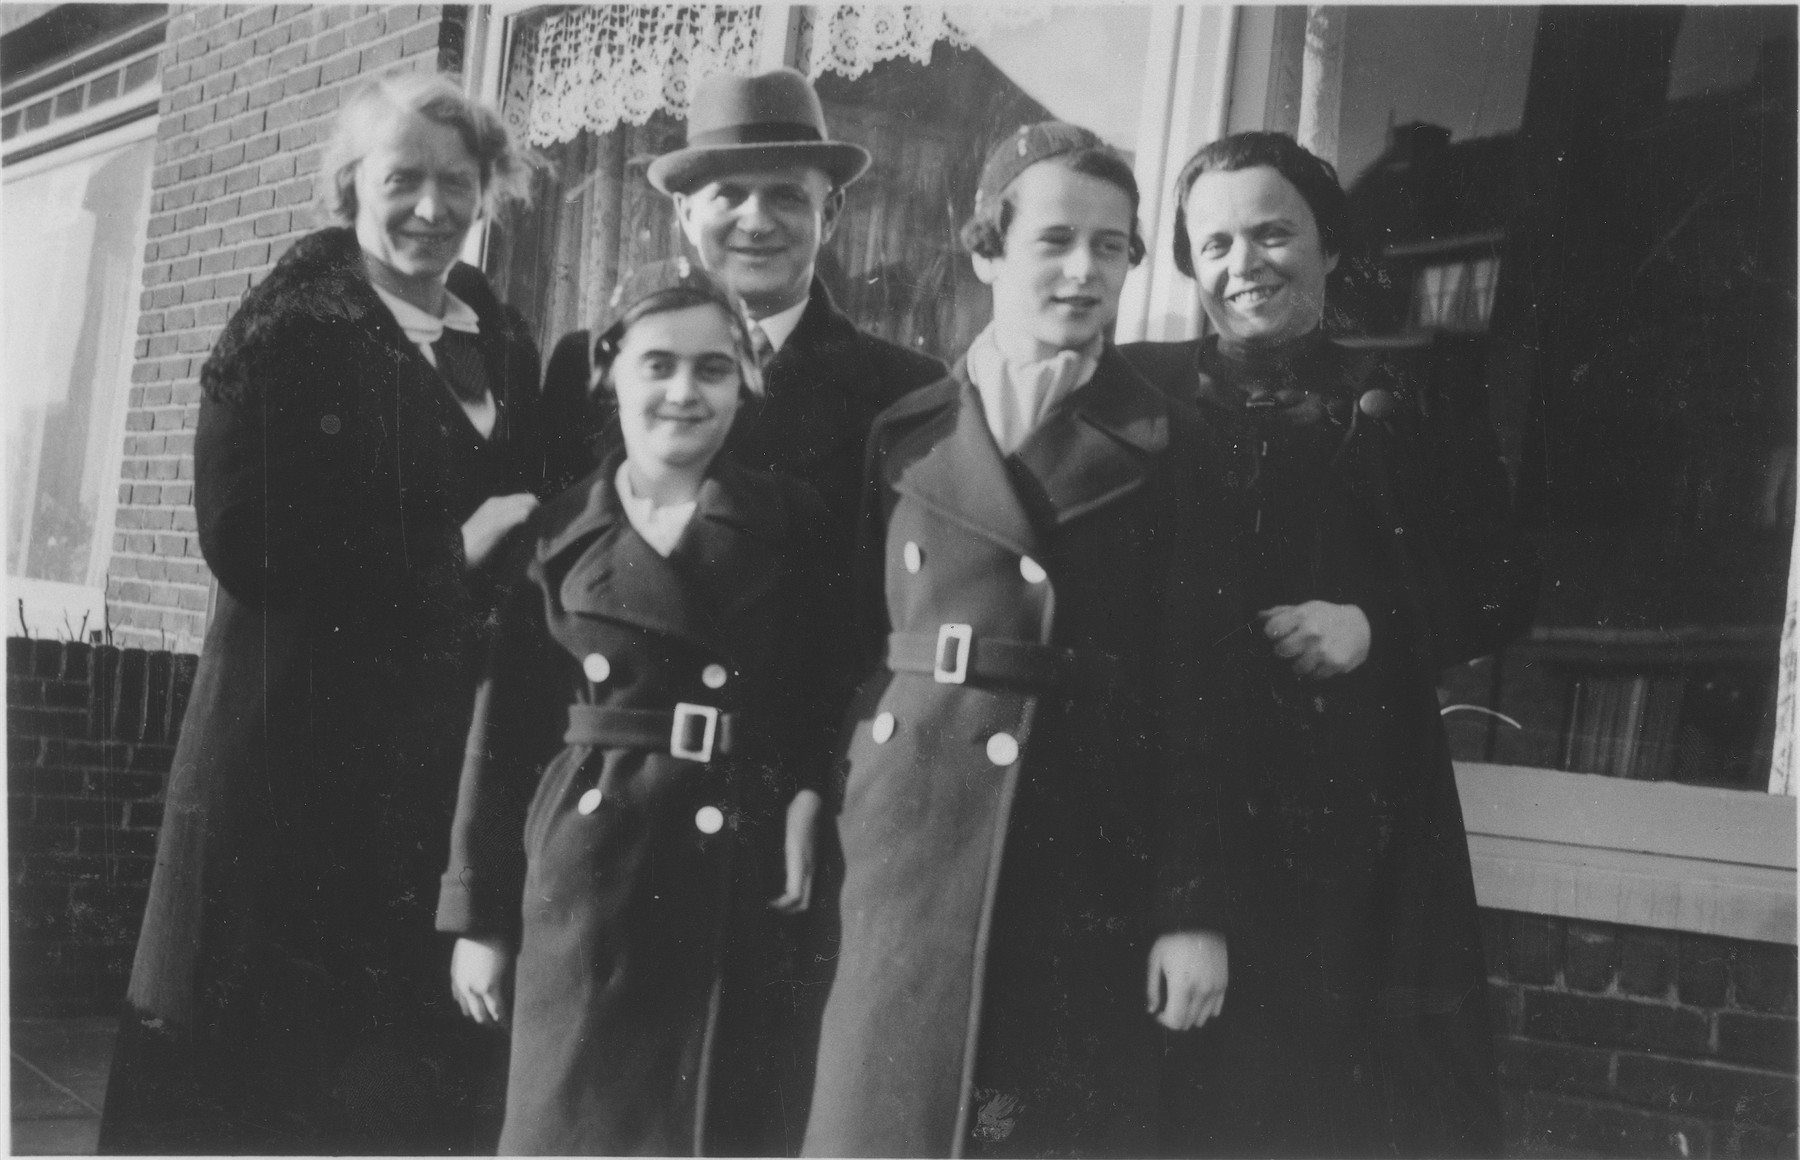 Portrait of the Bloch family in front of a house in Zandvoort.  Pictured from left to right are Ilse, Doris, Richard and Gerda Bloch and Marion (Cats) Hollander (Ilse's sister).